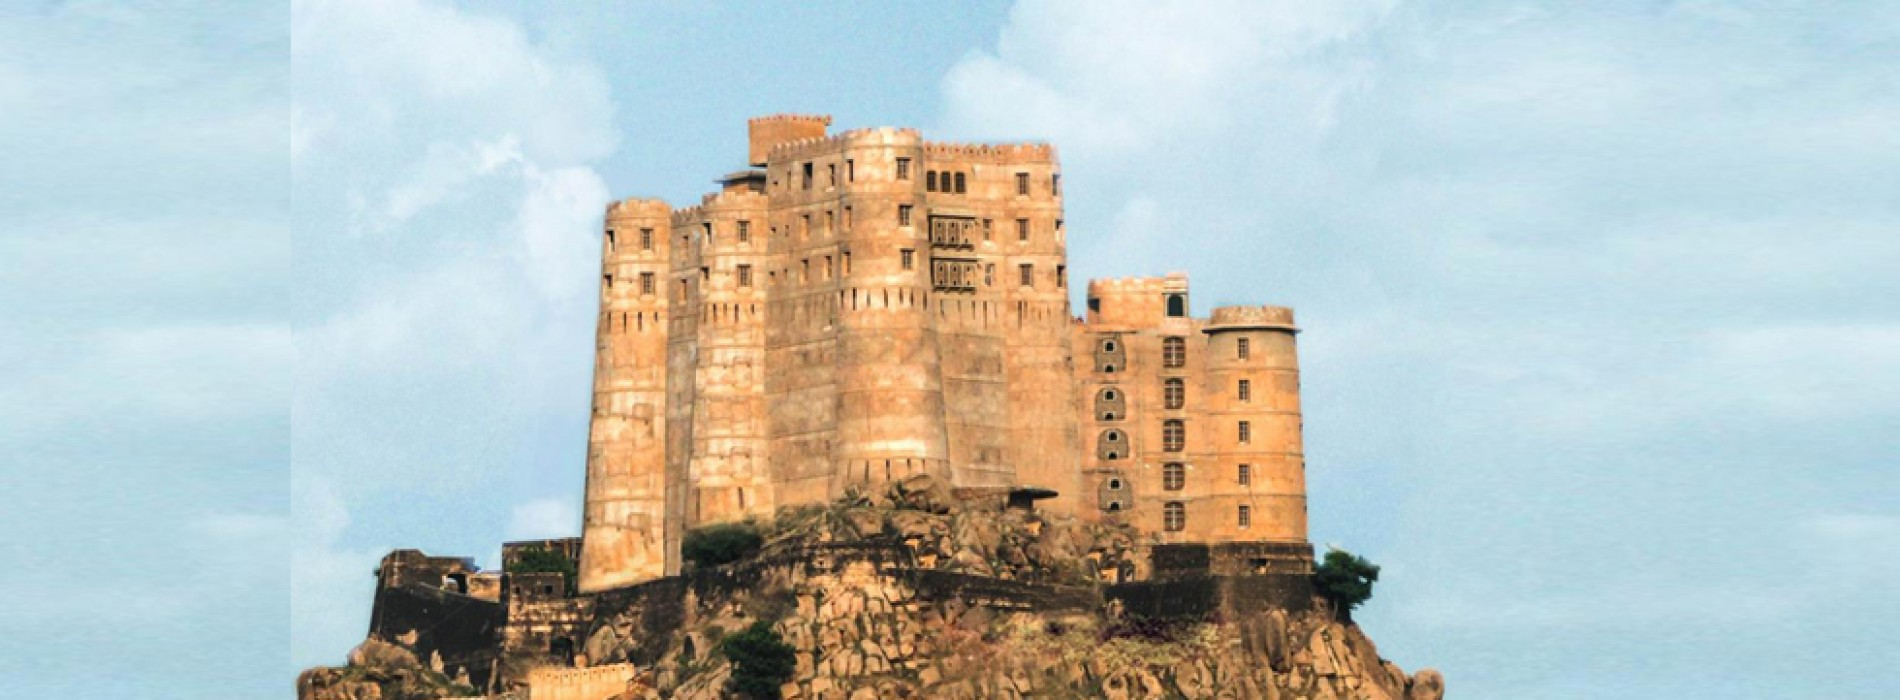 Alila to reopen 230-year-old fort in Rajasthan